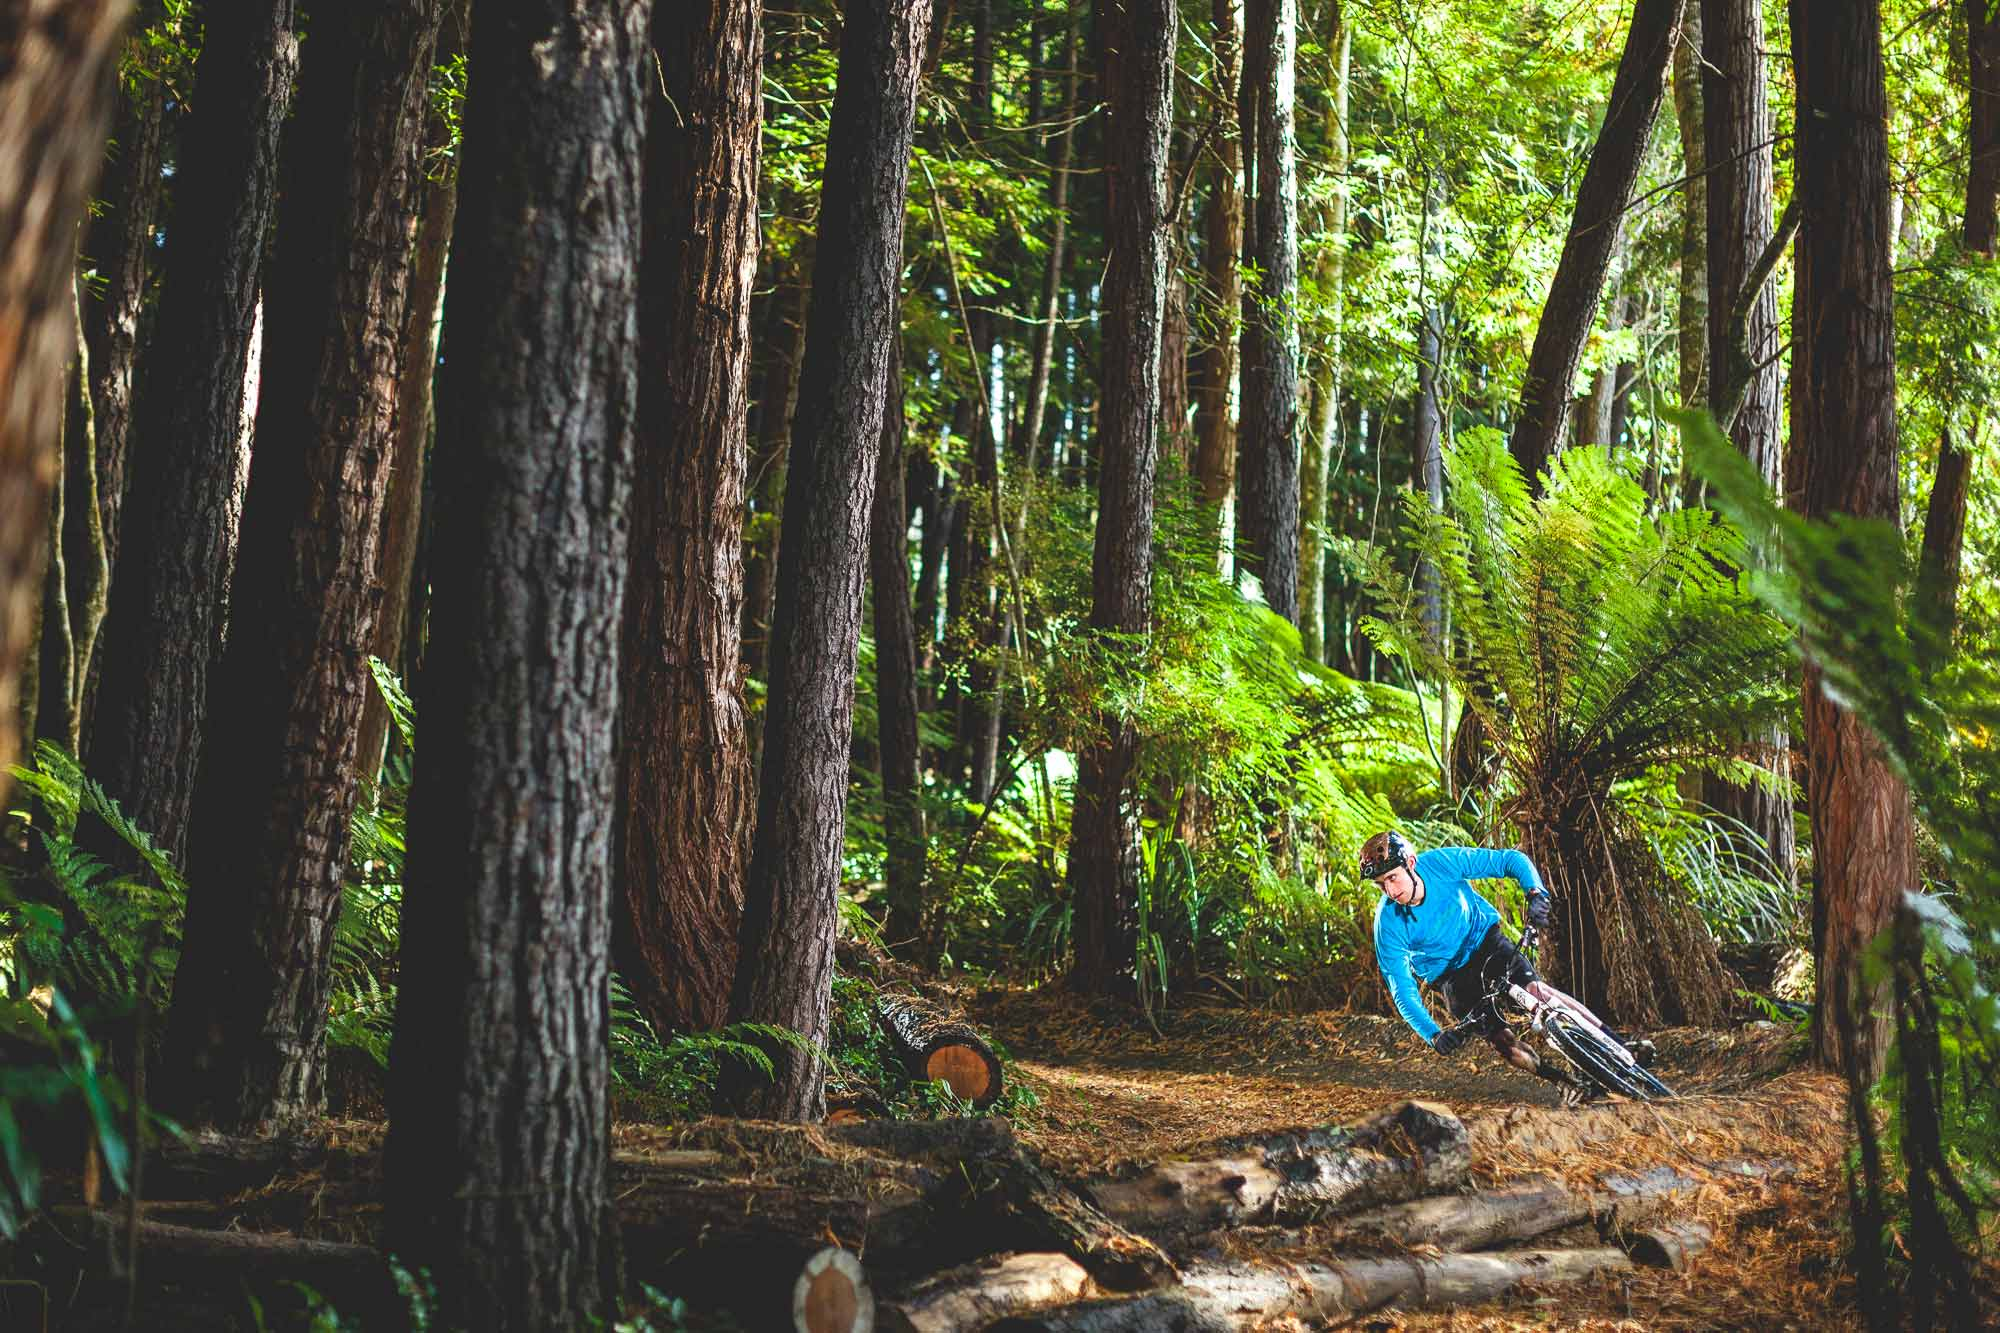 Mountain bike rider Ethan Glover riding in Dunedin red wood forest